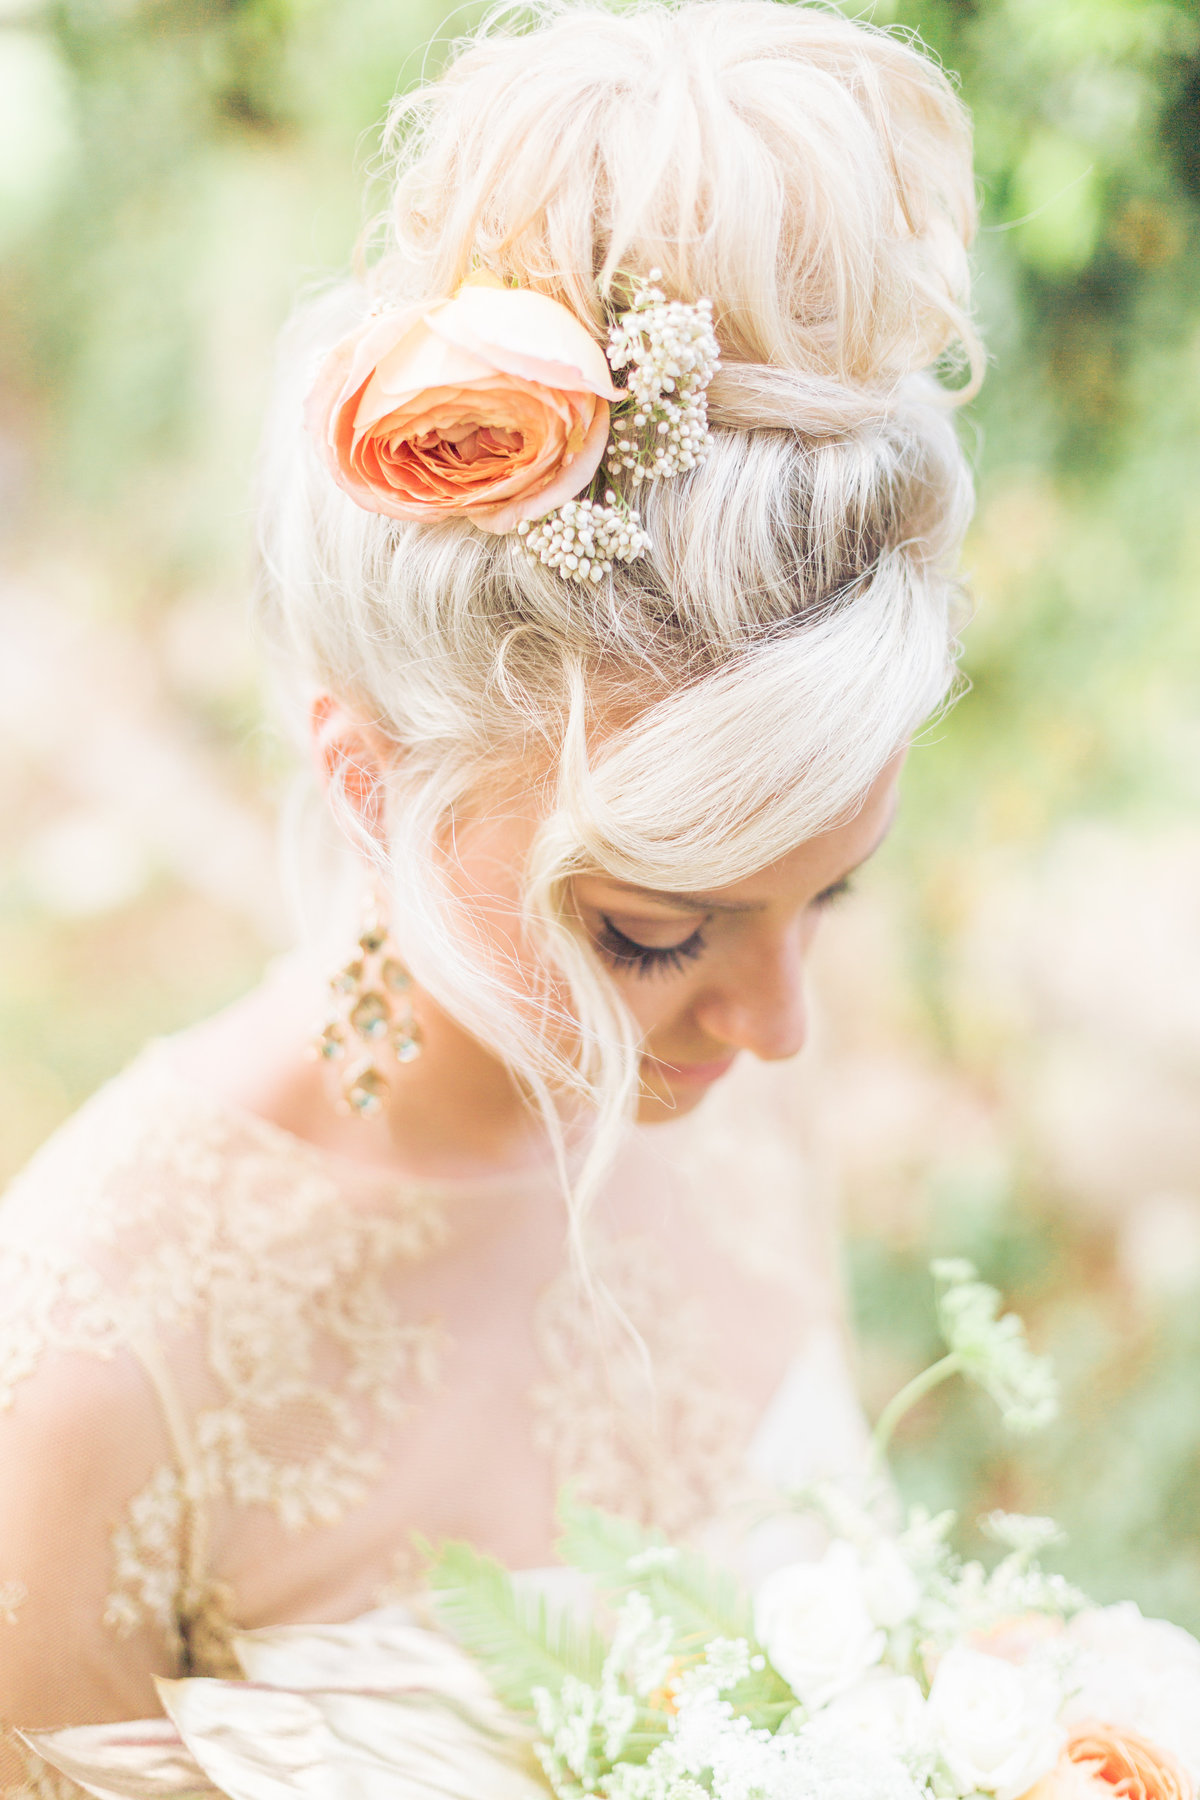 Maui wedding updo photo